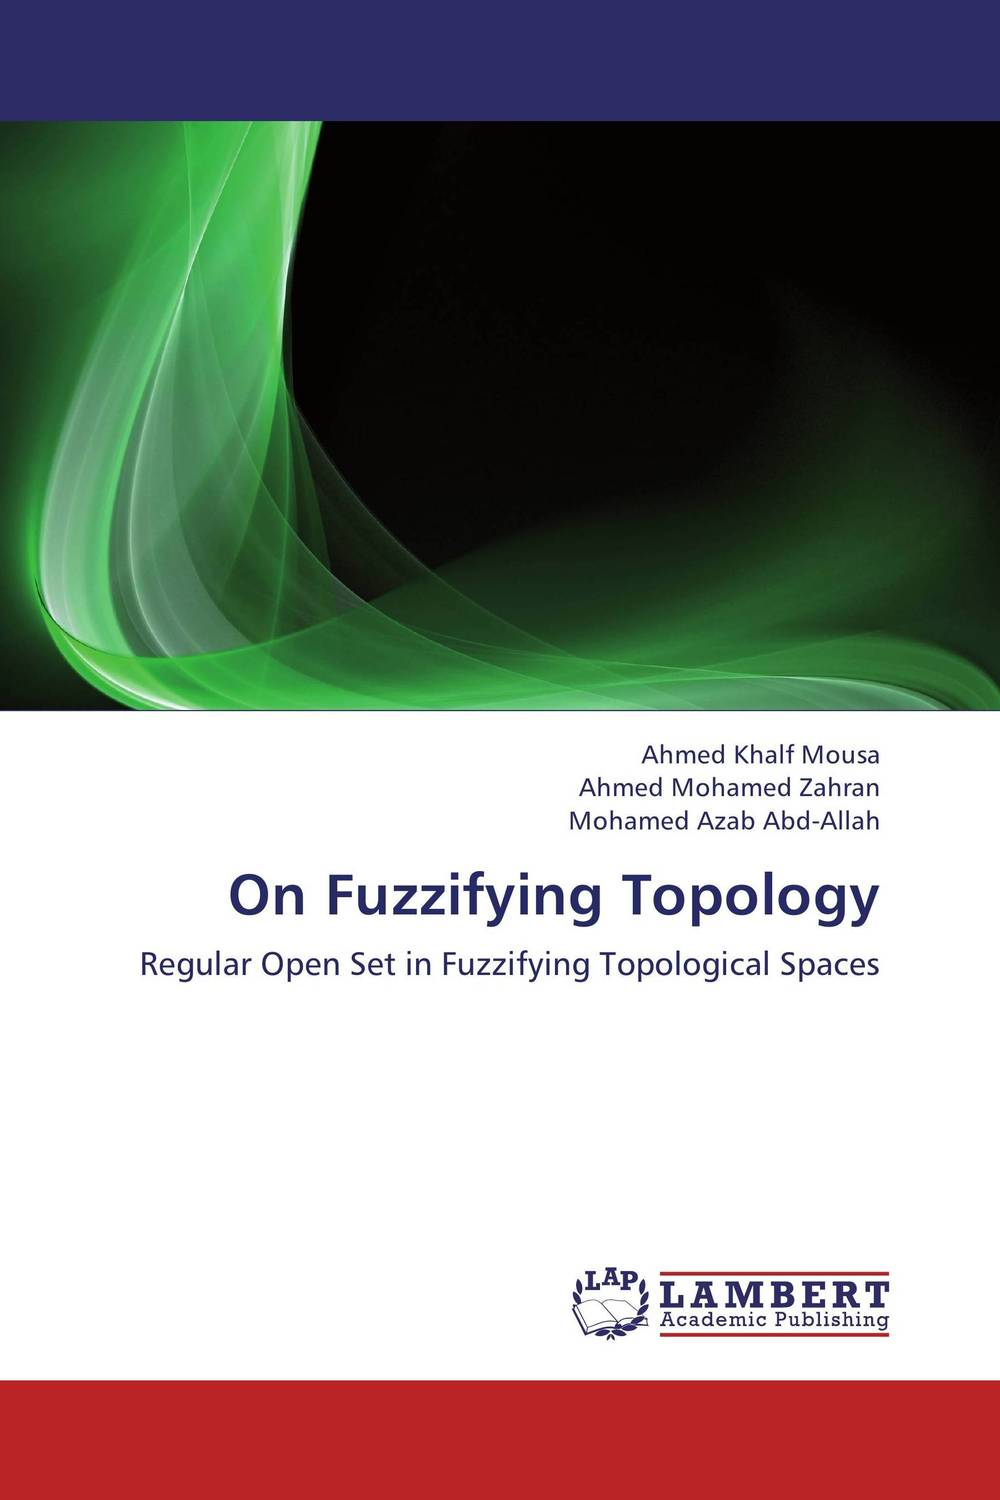 On Fuzzifying Topology